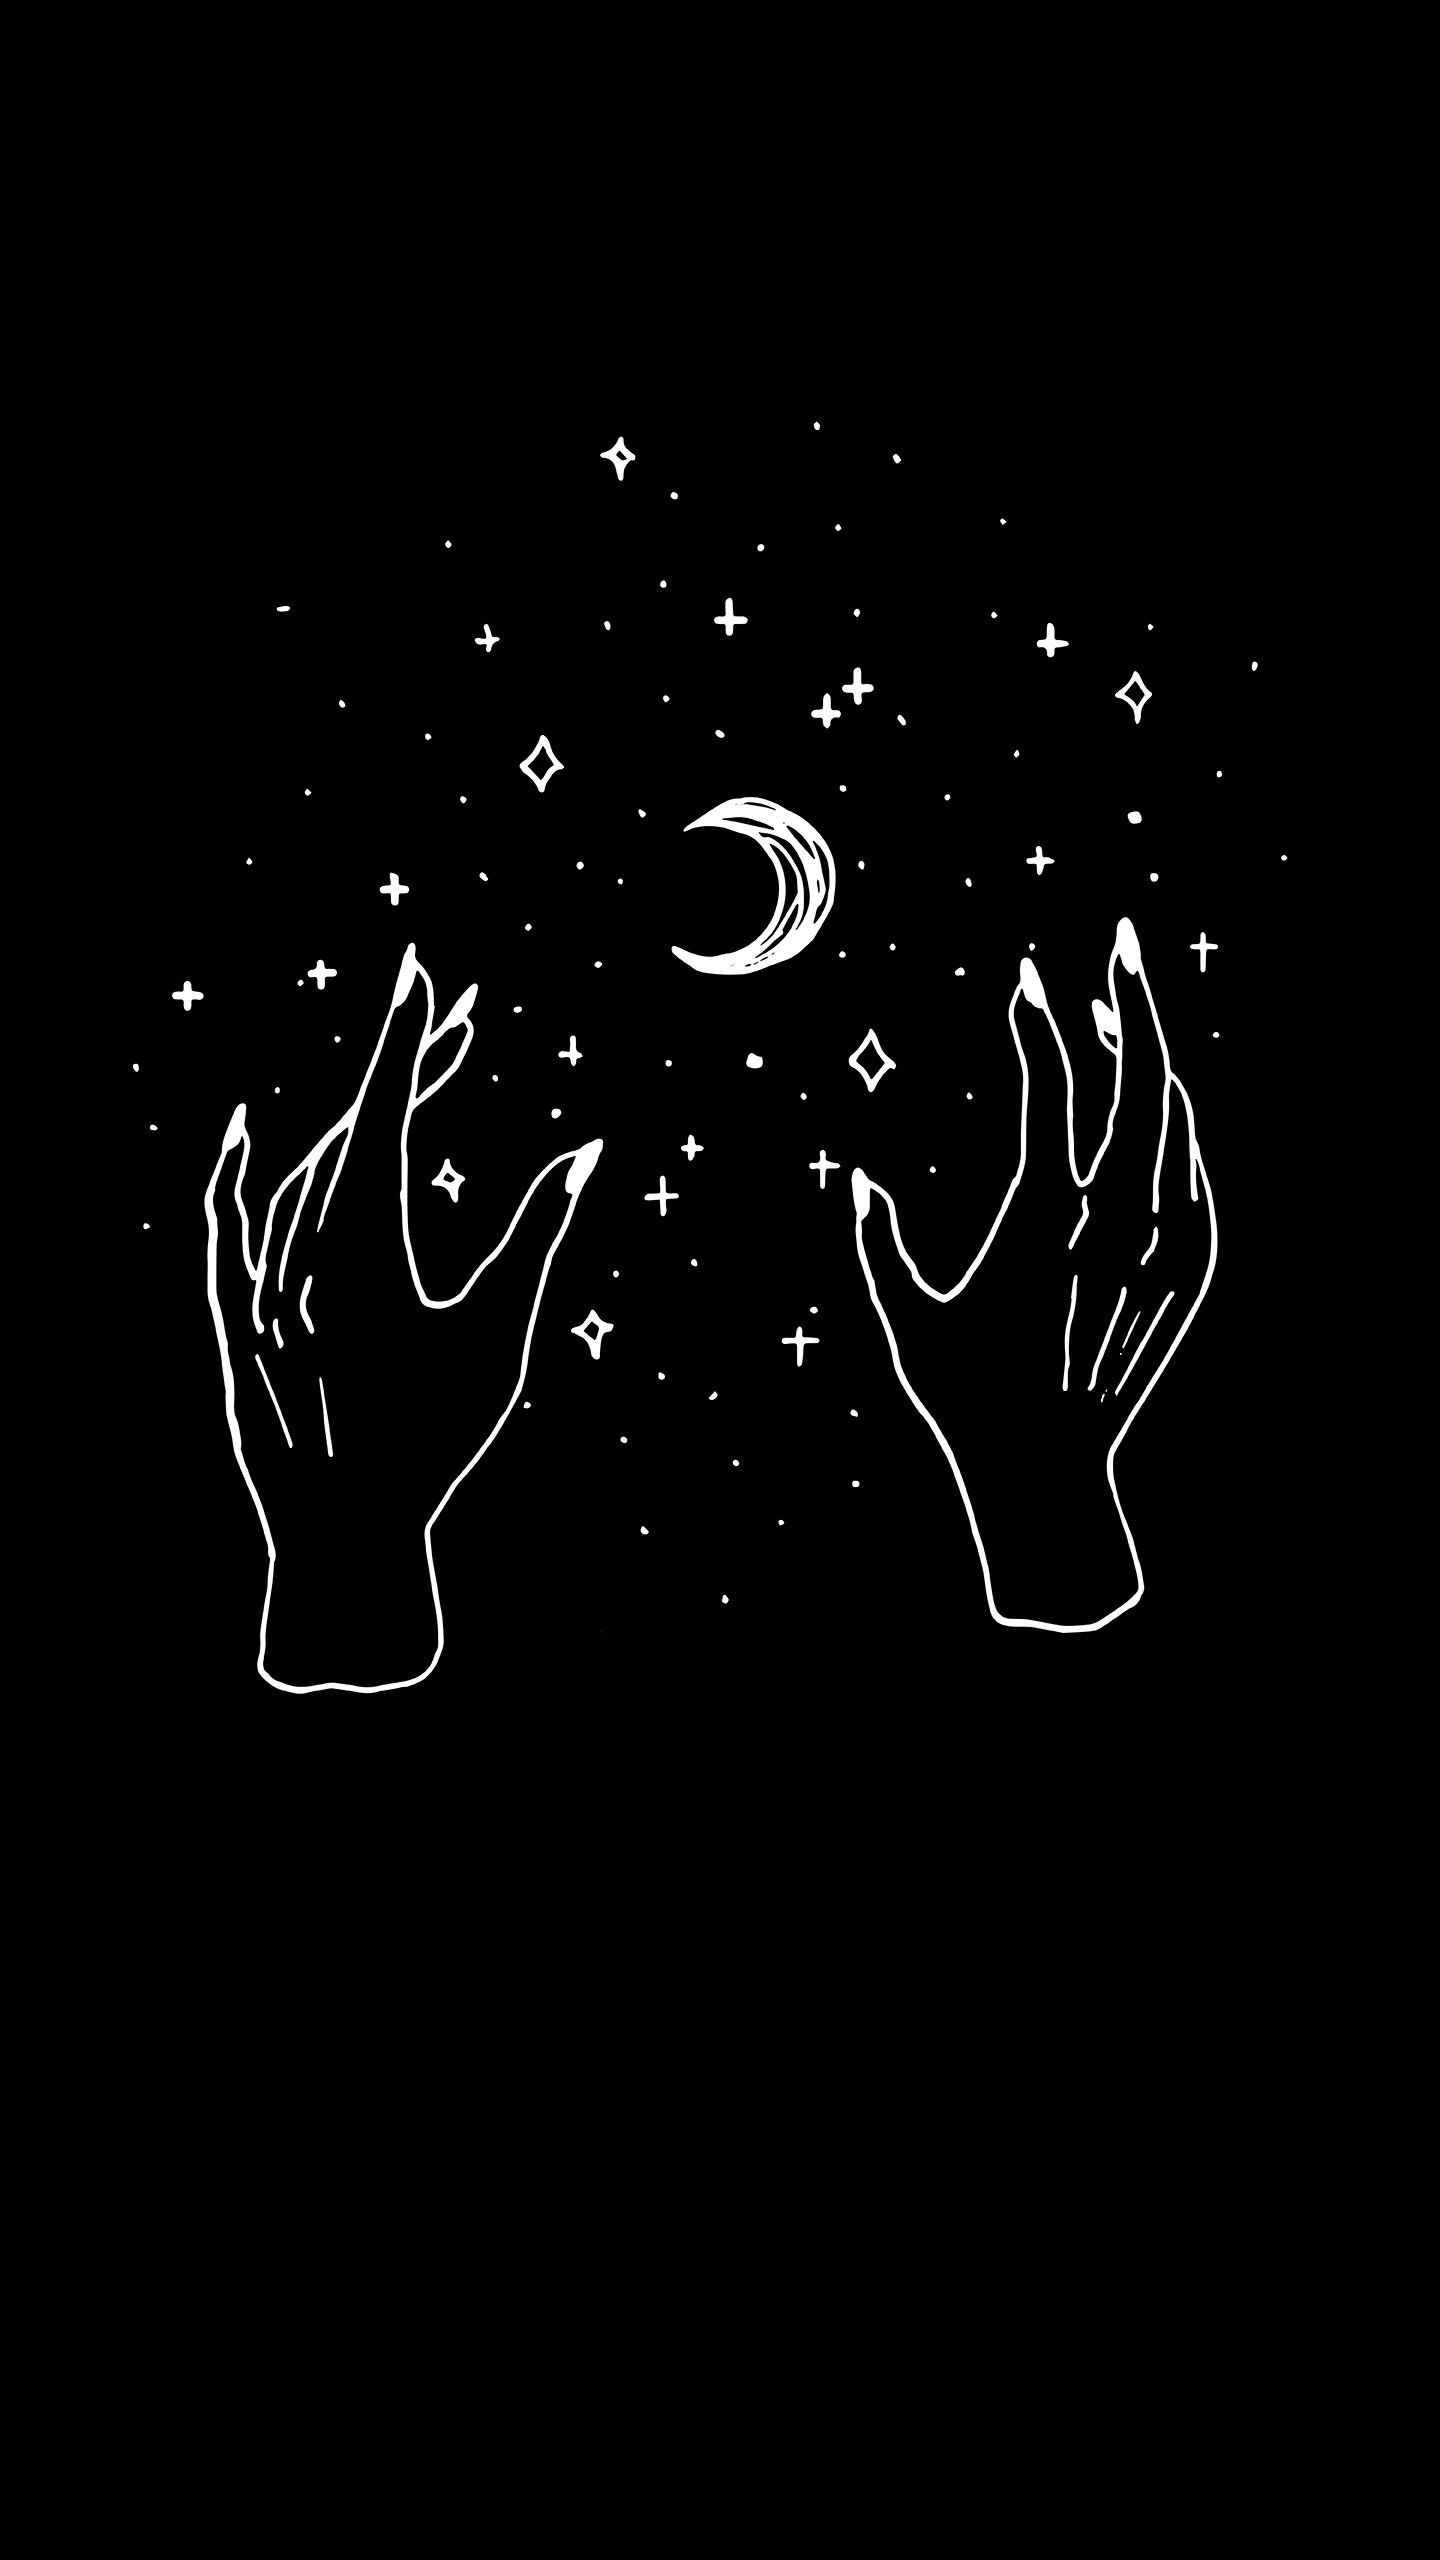 Something I Found Witchy Wallpaper Black Aesthetic Wallpaper Art